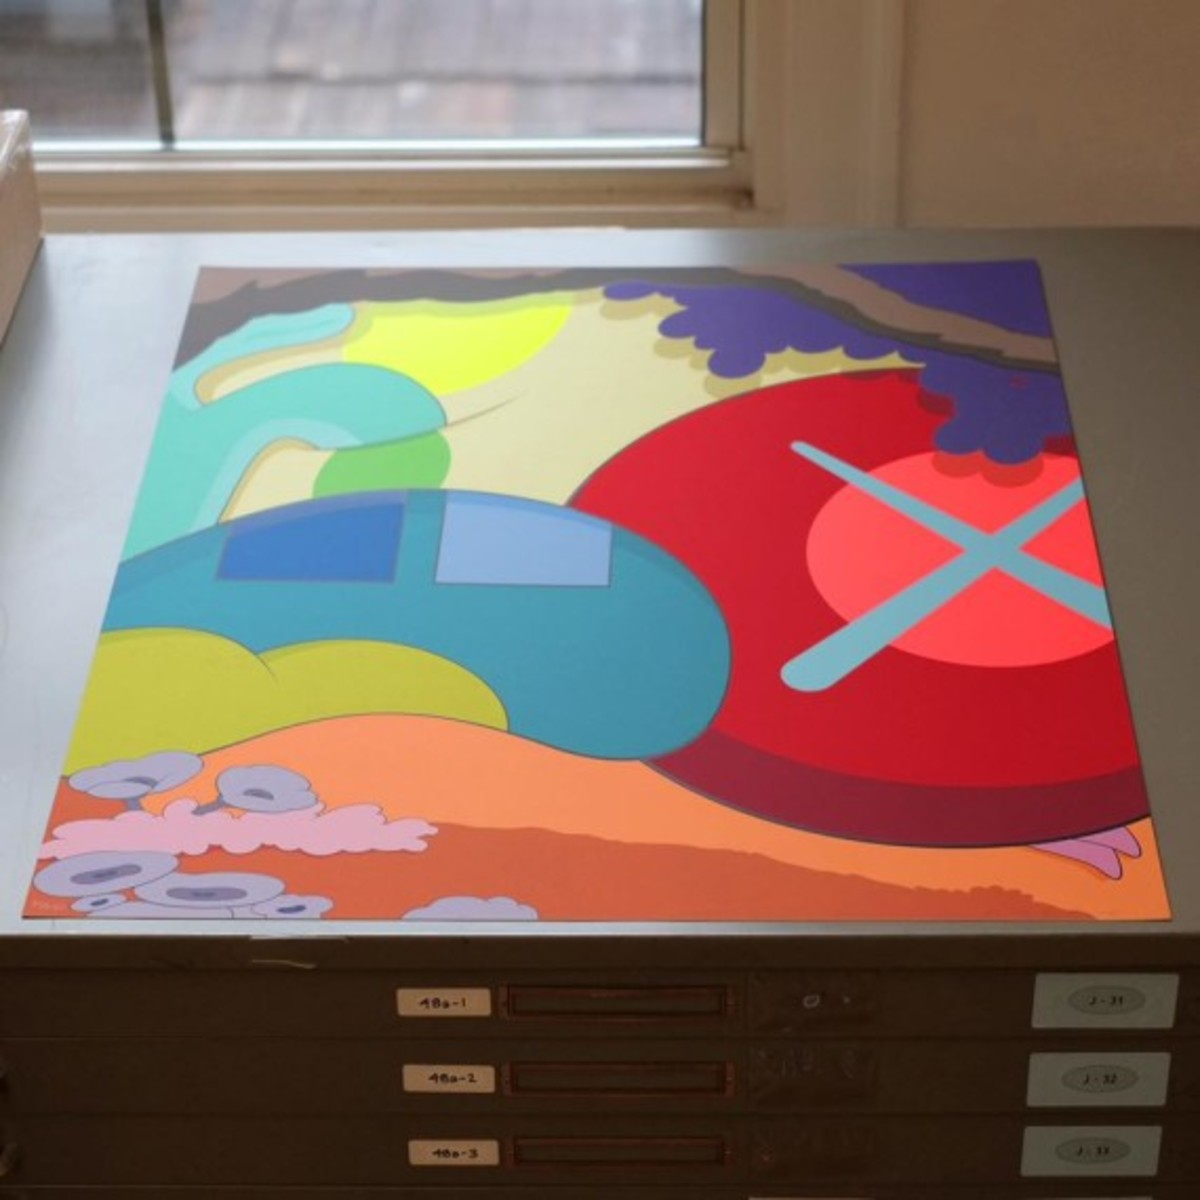 kaws-to-release-you-should-know-i-know-limited-edition-print-01